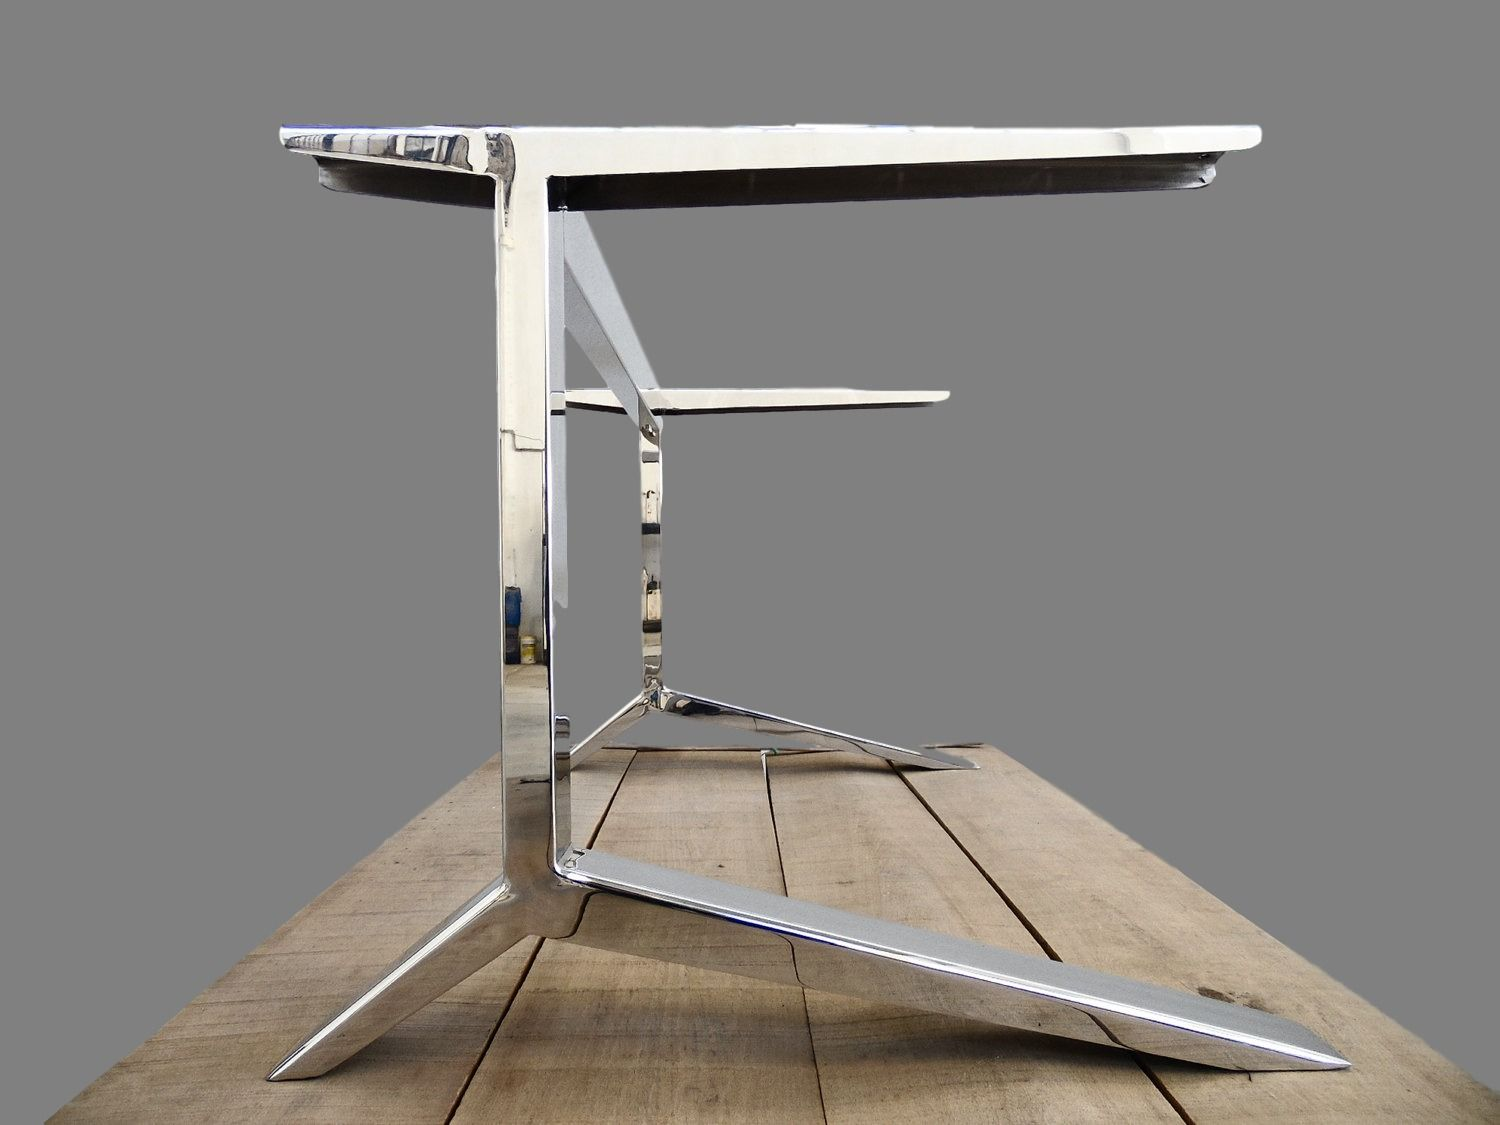 Desk Legs 46 H X 46 W Apart 46 C-Table  Etsy  Steel office table